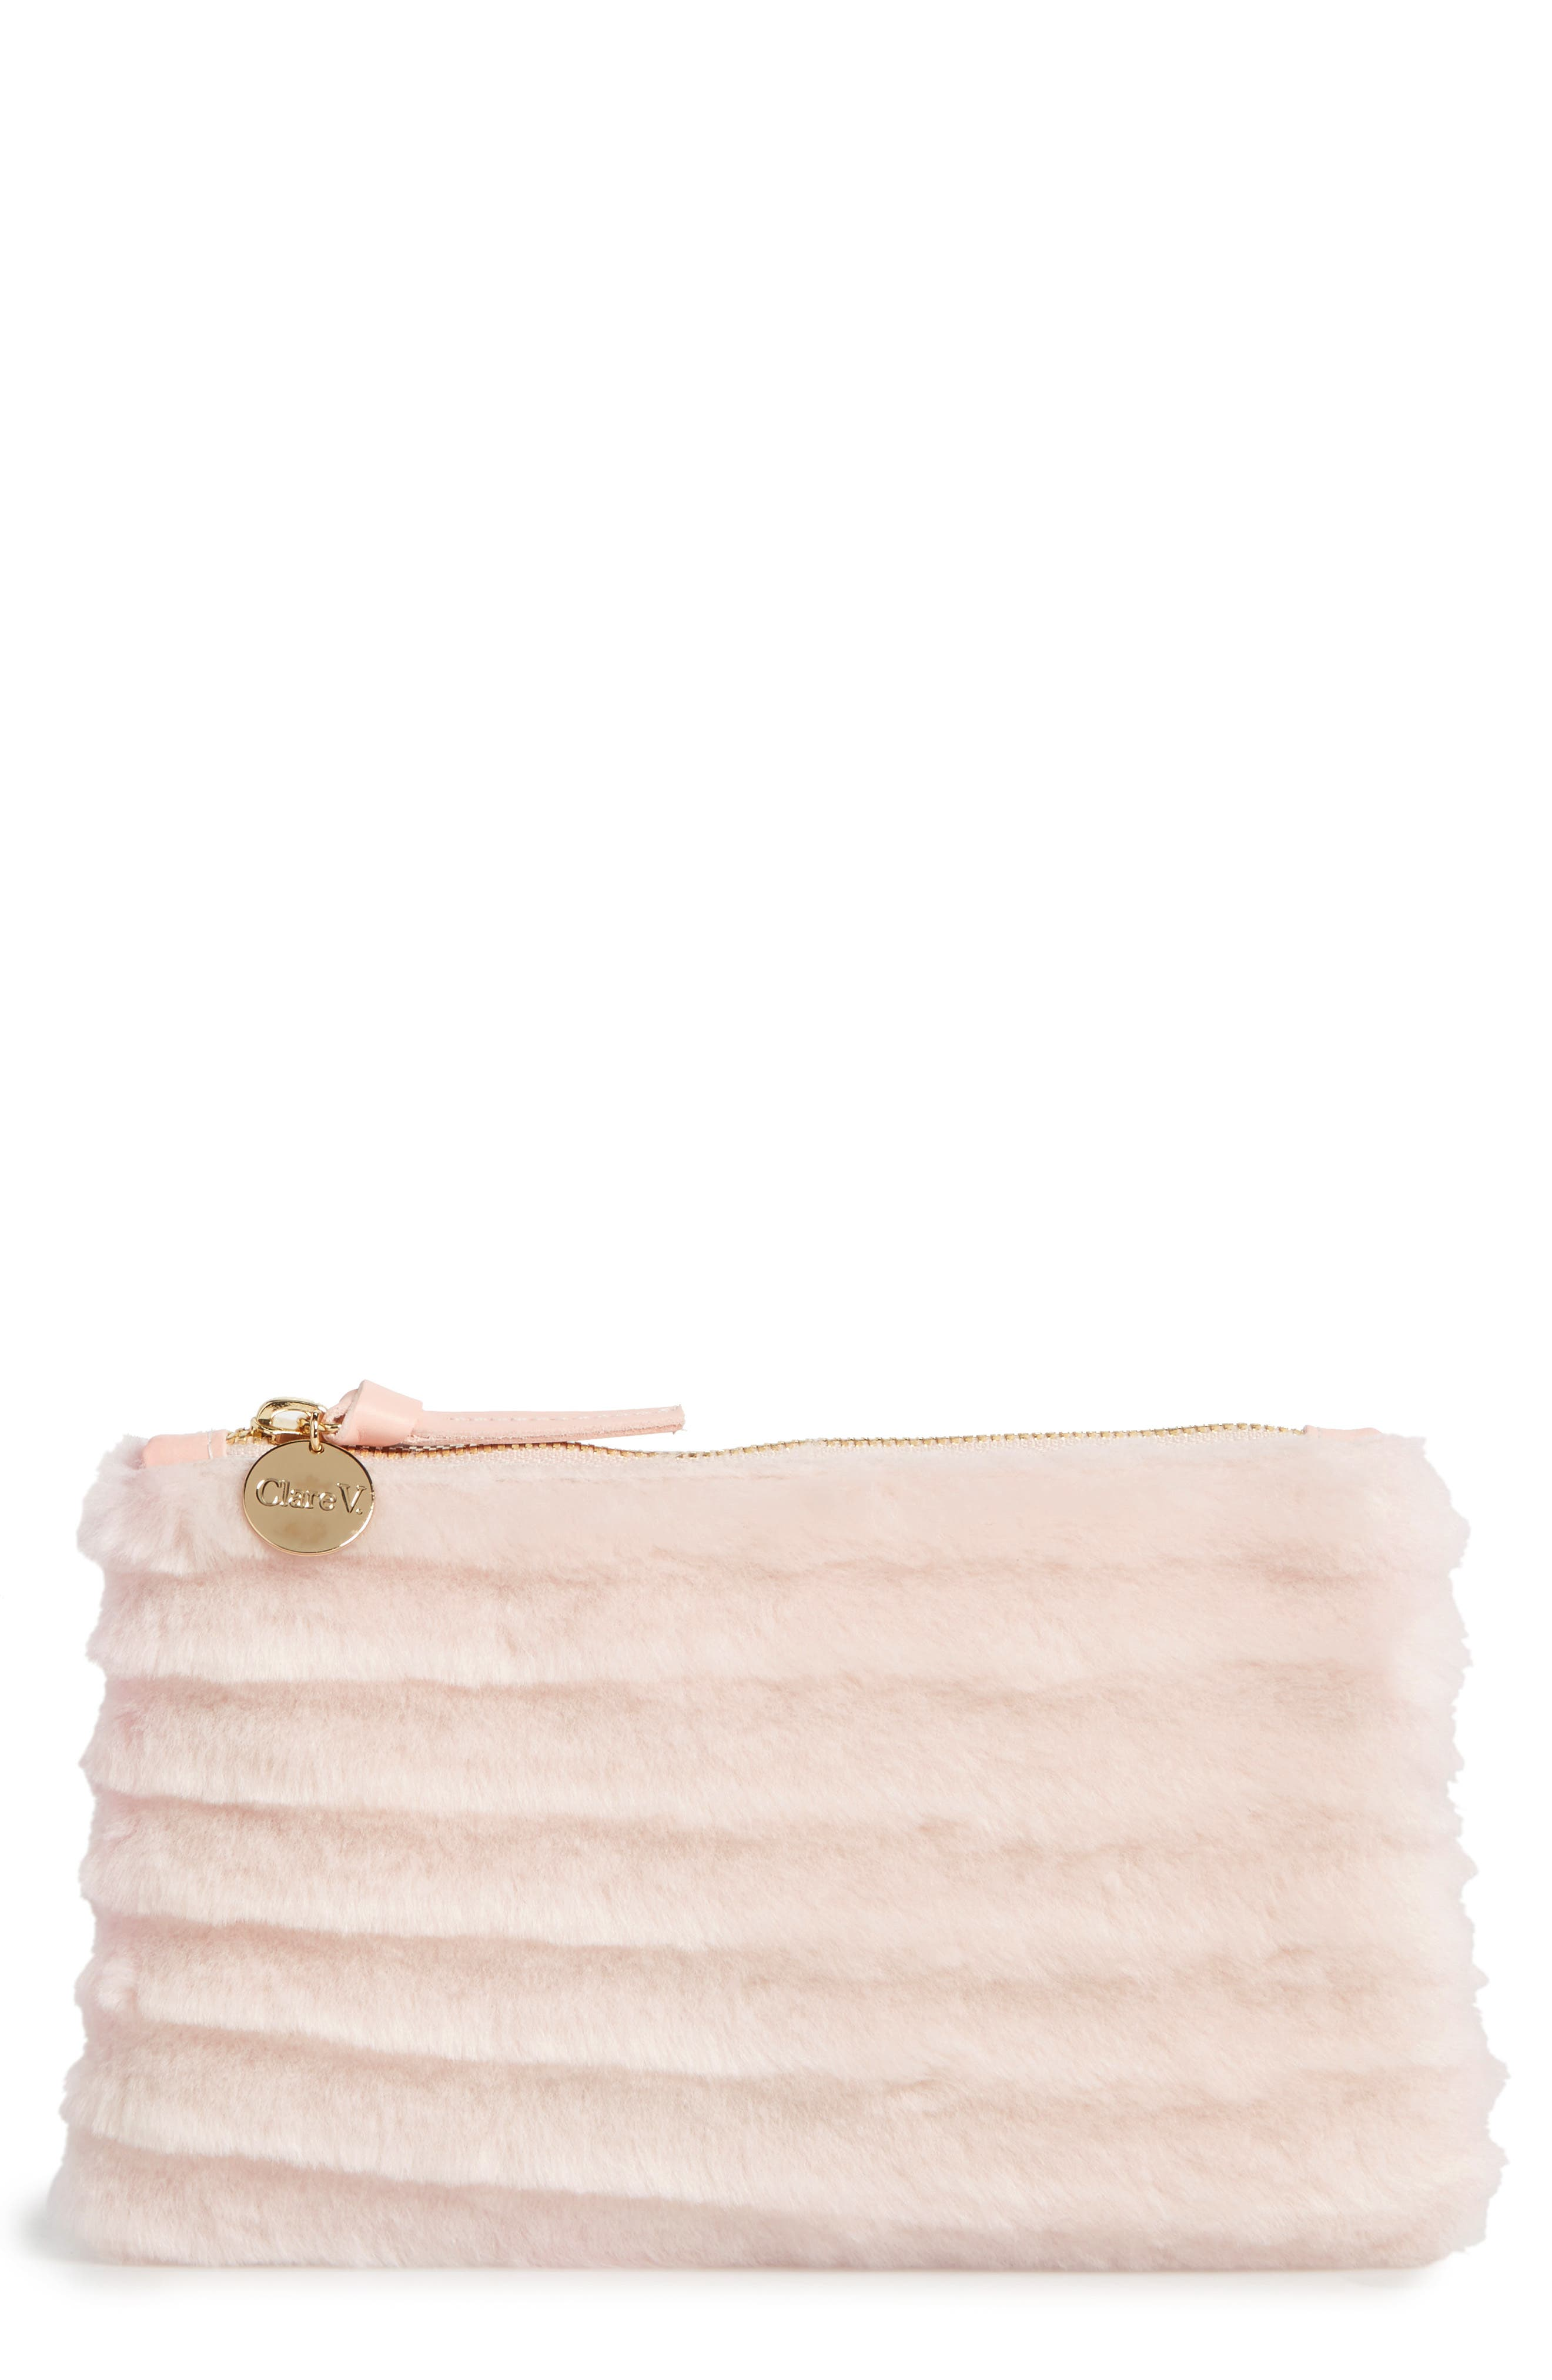 CLARE V. Genuine Shearling Pouch